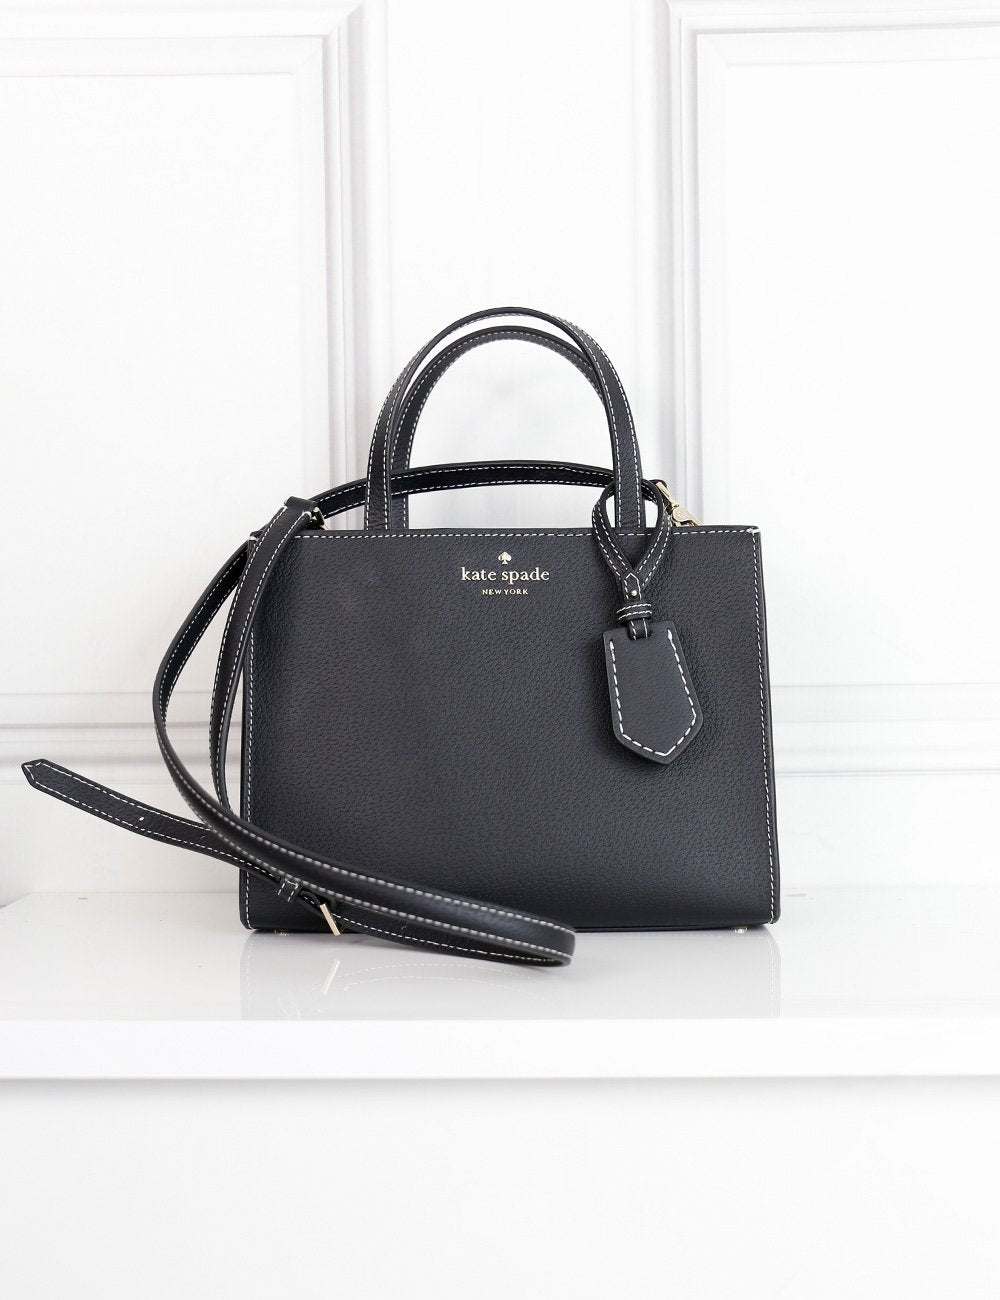 Kate Spade black tote bag with shoulder strap- My Wardrobe Mistakes